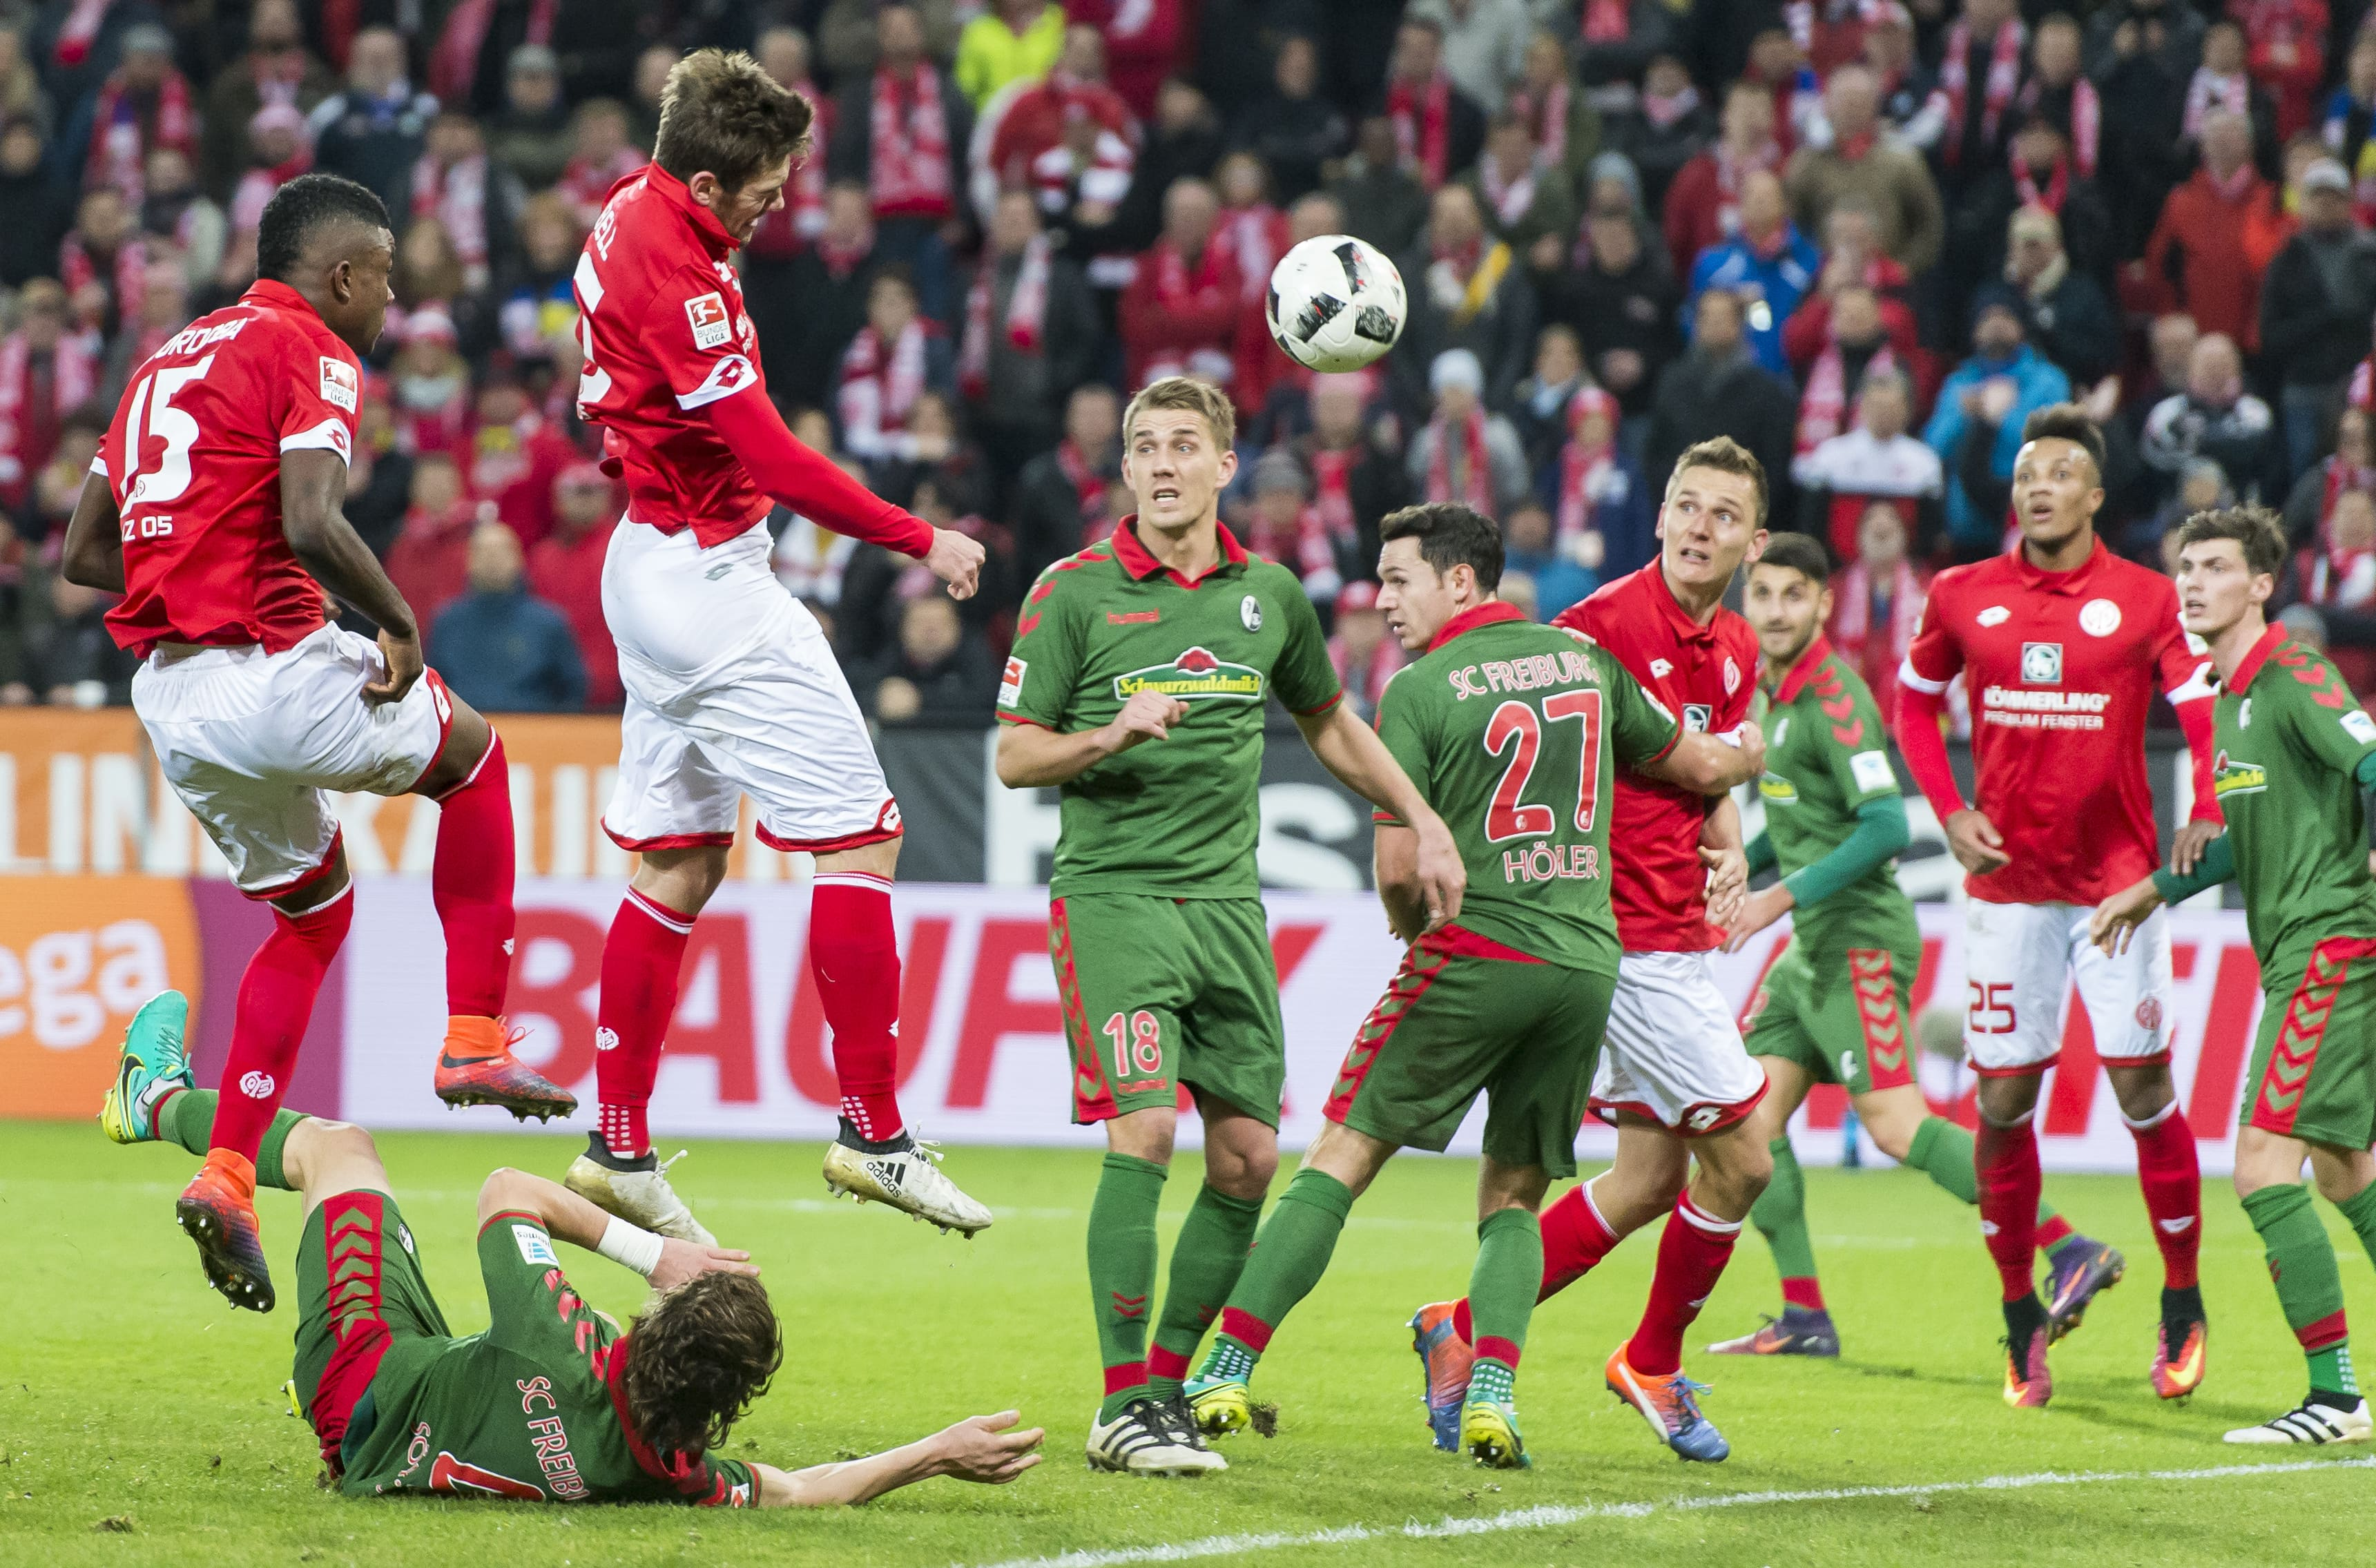 Mainz Vs Freiburg Bundesliga Prediction